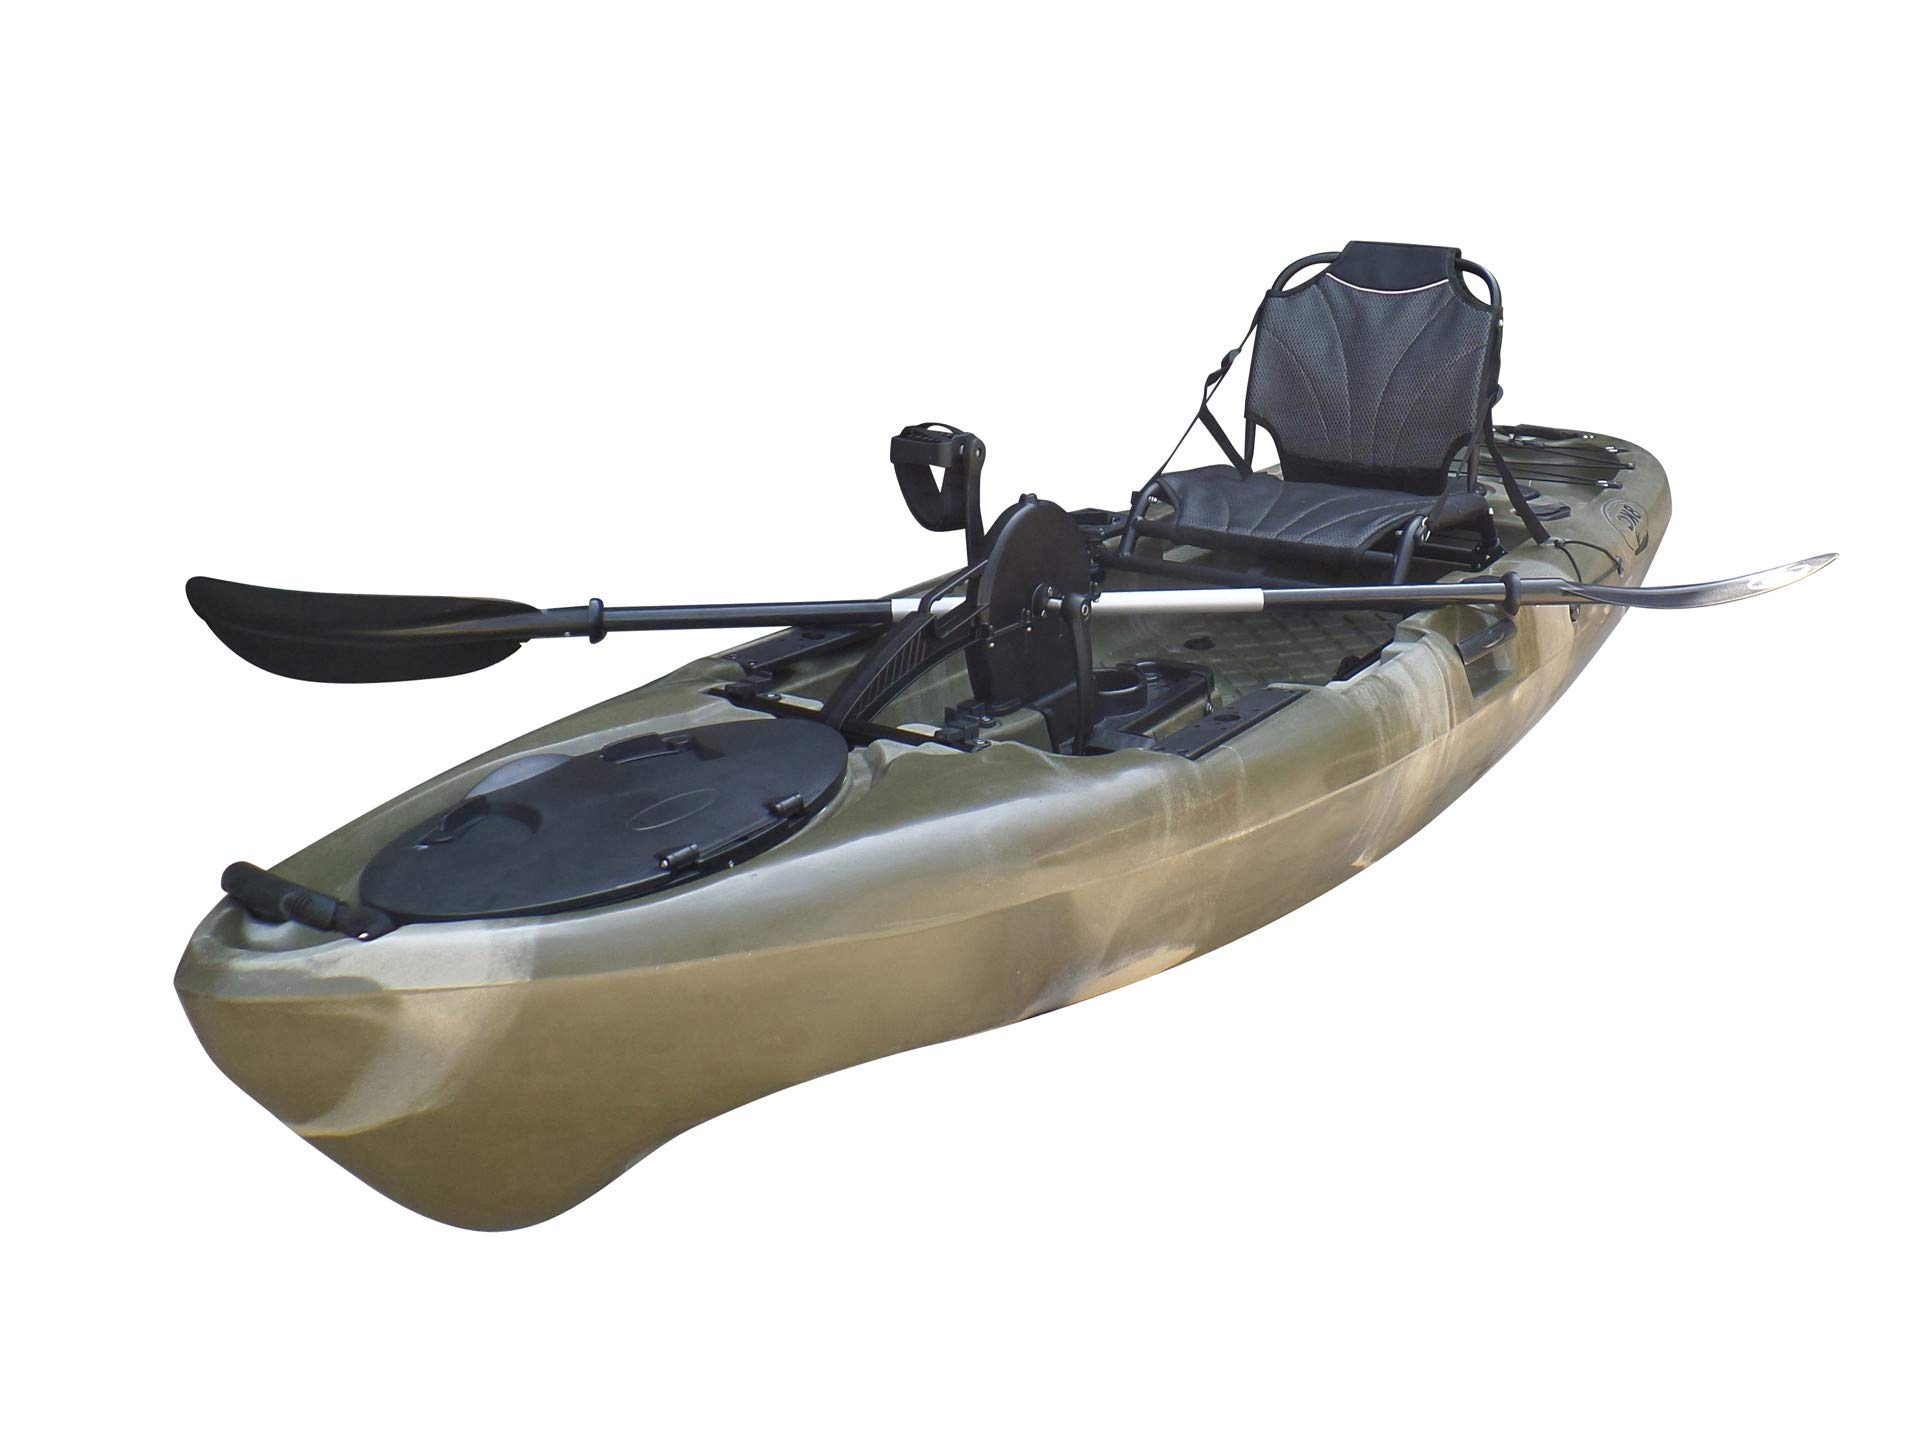 BKC UH-PK11 Pedal Drive Solo Rover 10-Foot 6-Inch Solo Kayak Propeller-Driven Sit On Top Single Fishing Kayak with Pedal Drive, Rudder System, Paddle, and Seat Included (Green Camo) by Brooklyn Kayak Company